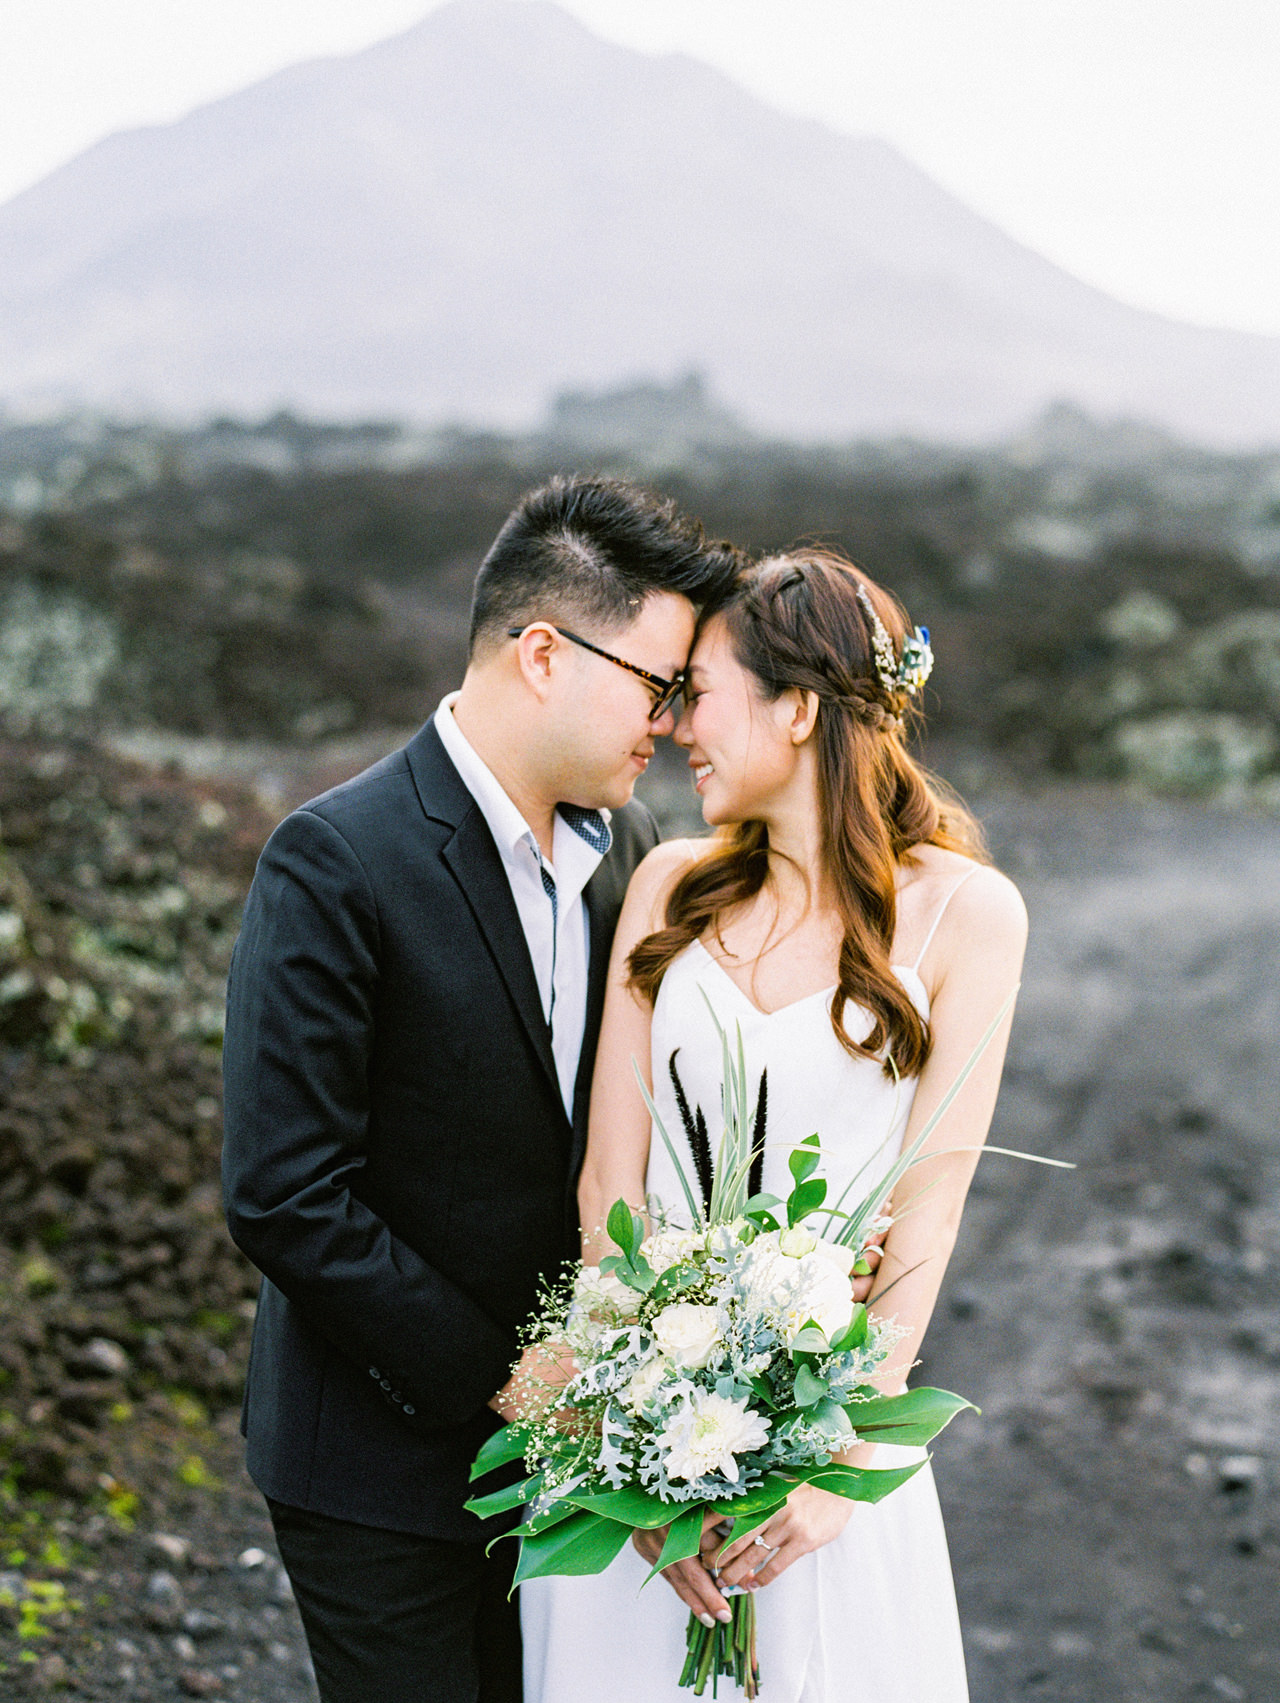 S&Y: Batur Volcano and Nungnung Waterfall Prewedding - Bali Prewedding Photographer 6